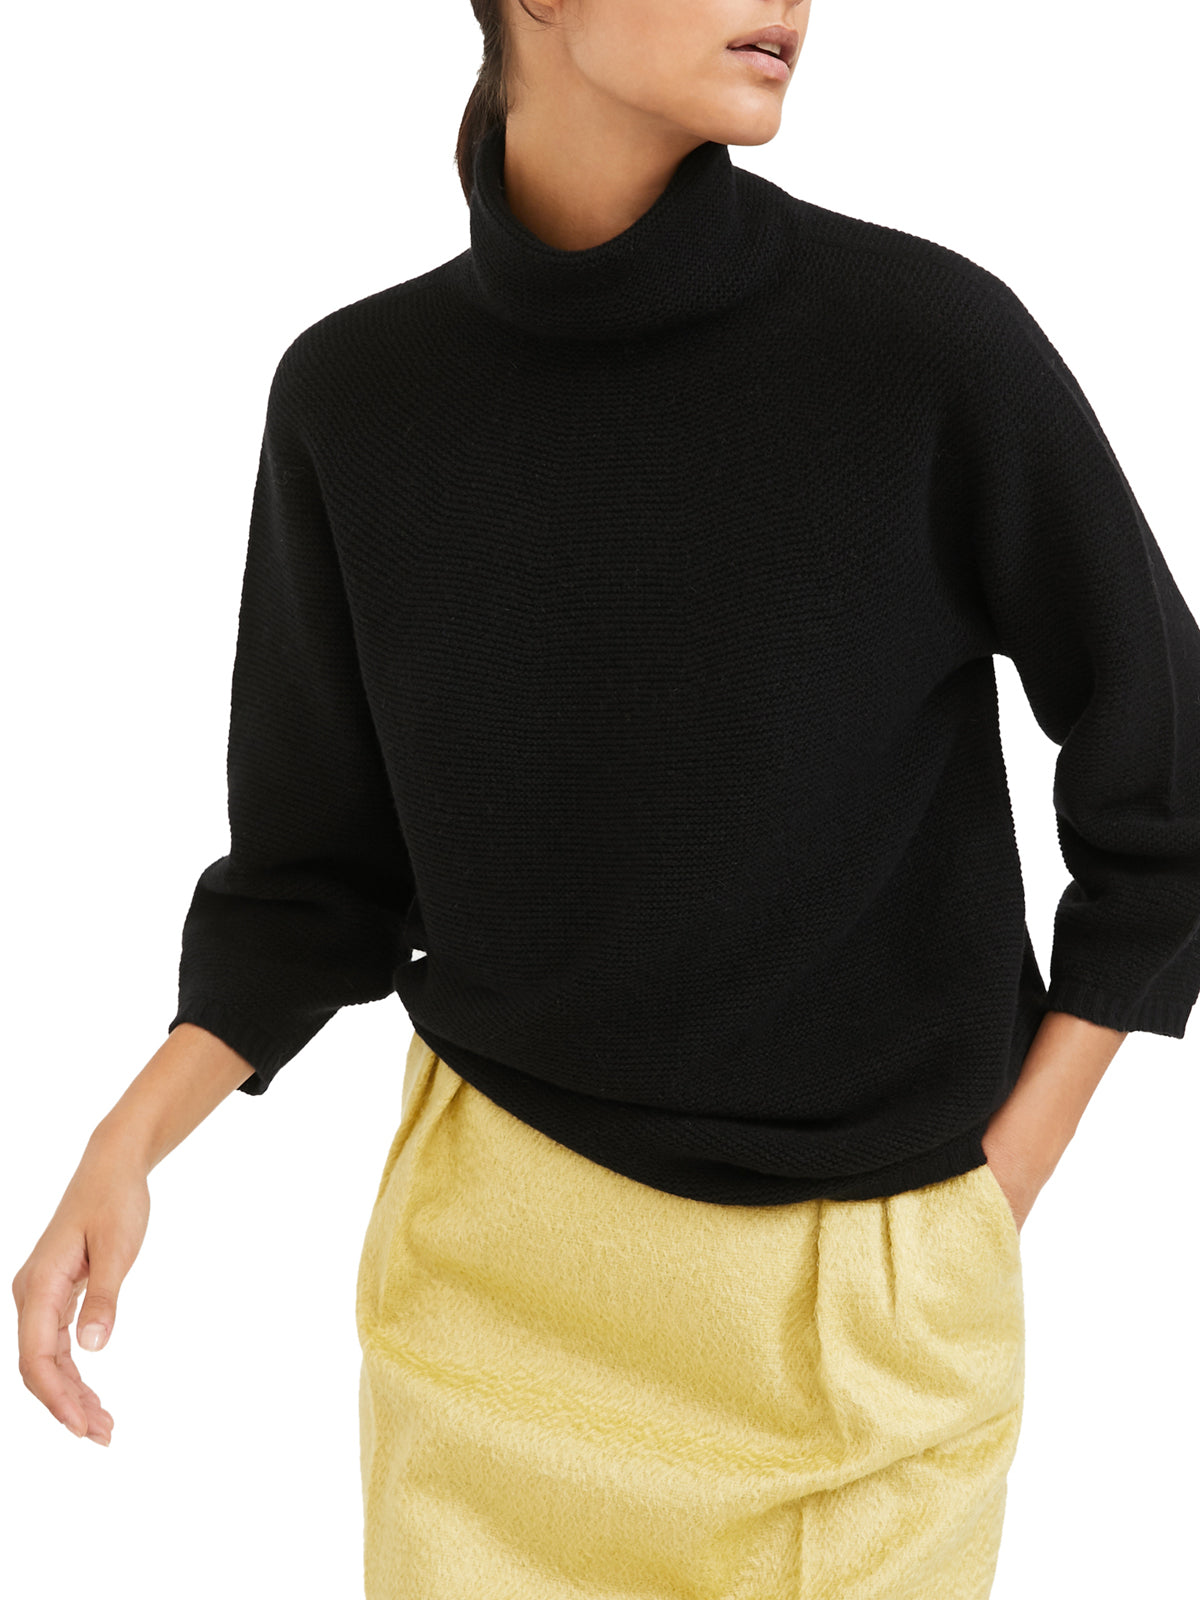 """Etrusco"" sweater with high neck"